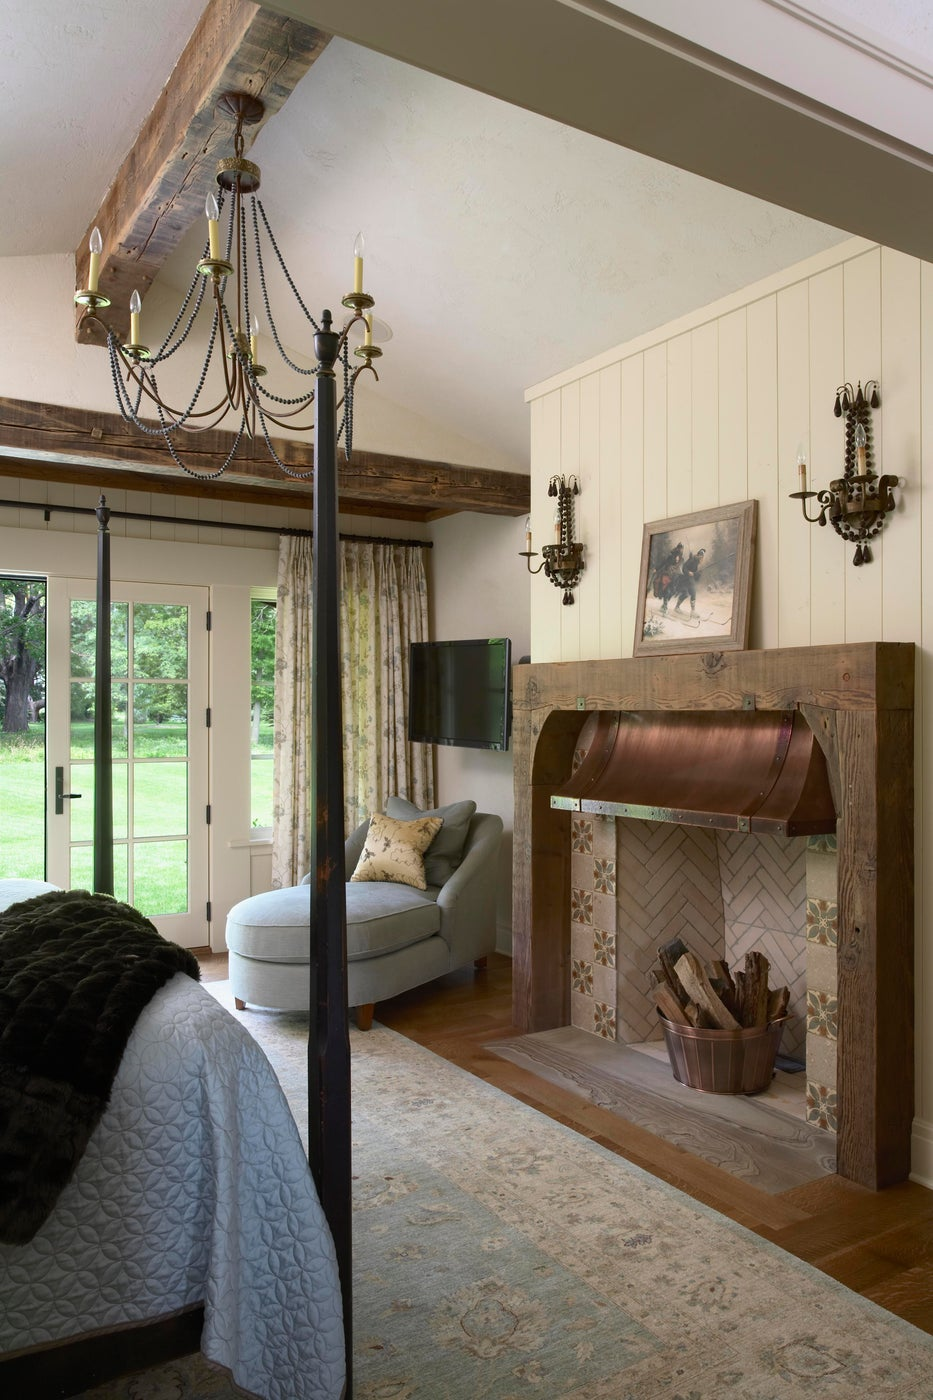 Fireplace and Seating Area in Master Bedroom - Minnesota